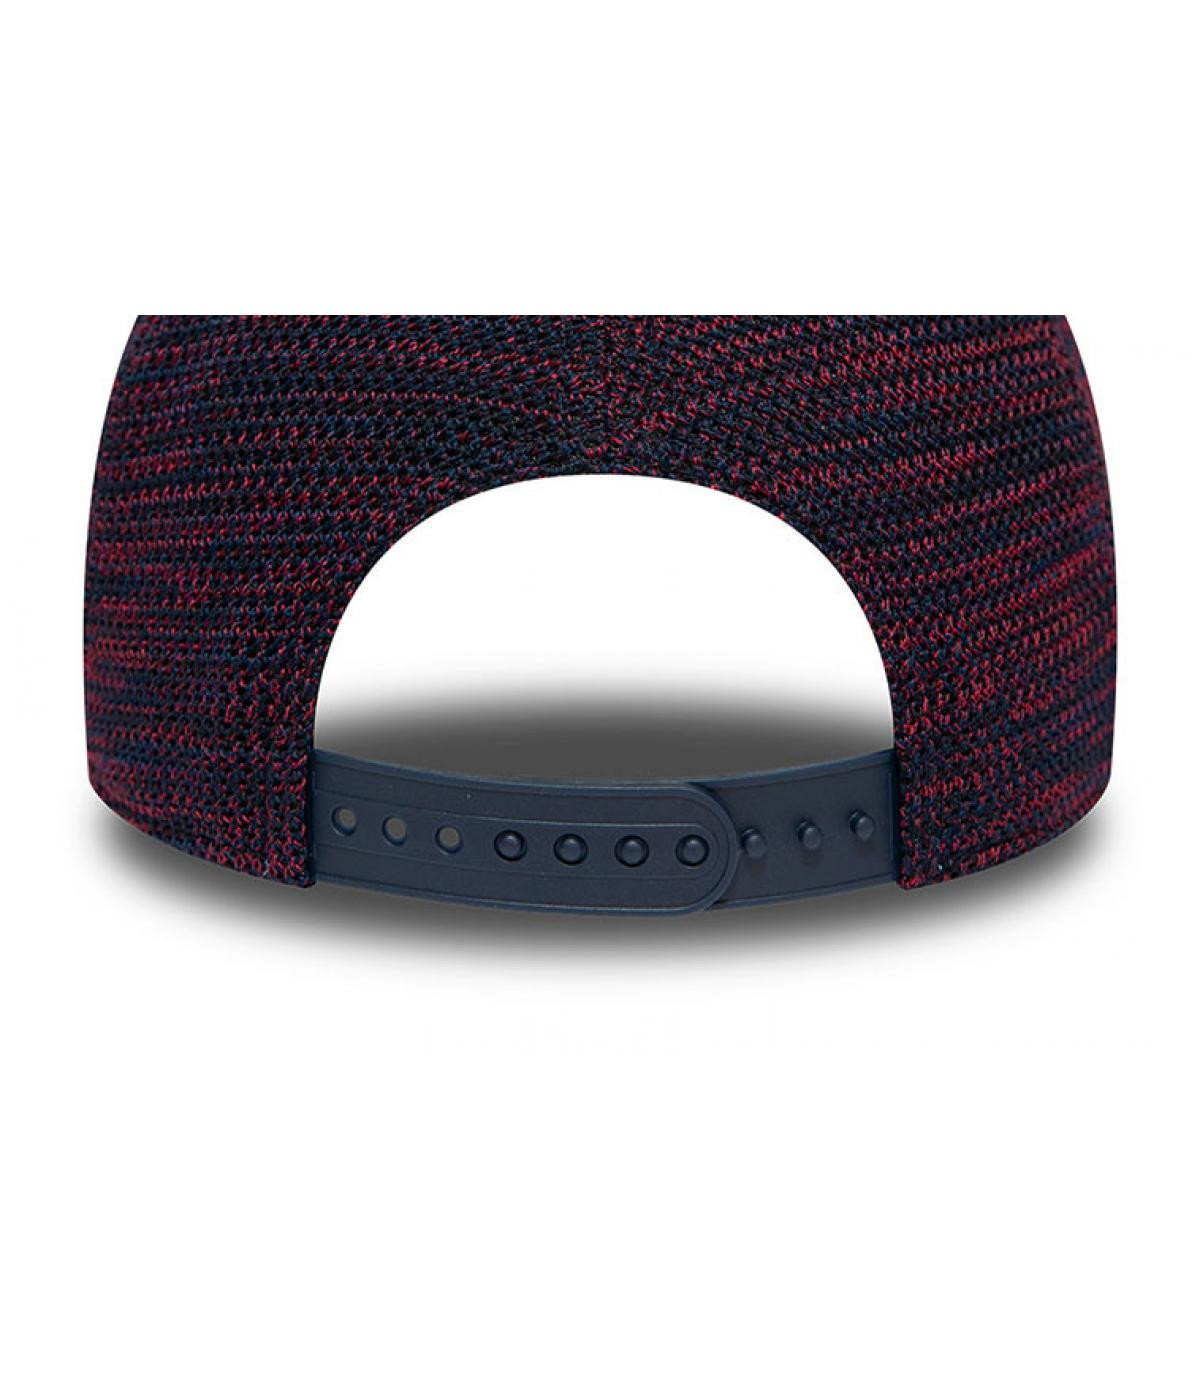 Détails Casquette Engineered Fit Boston Aframe navy cardinal - image 4